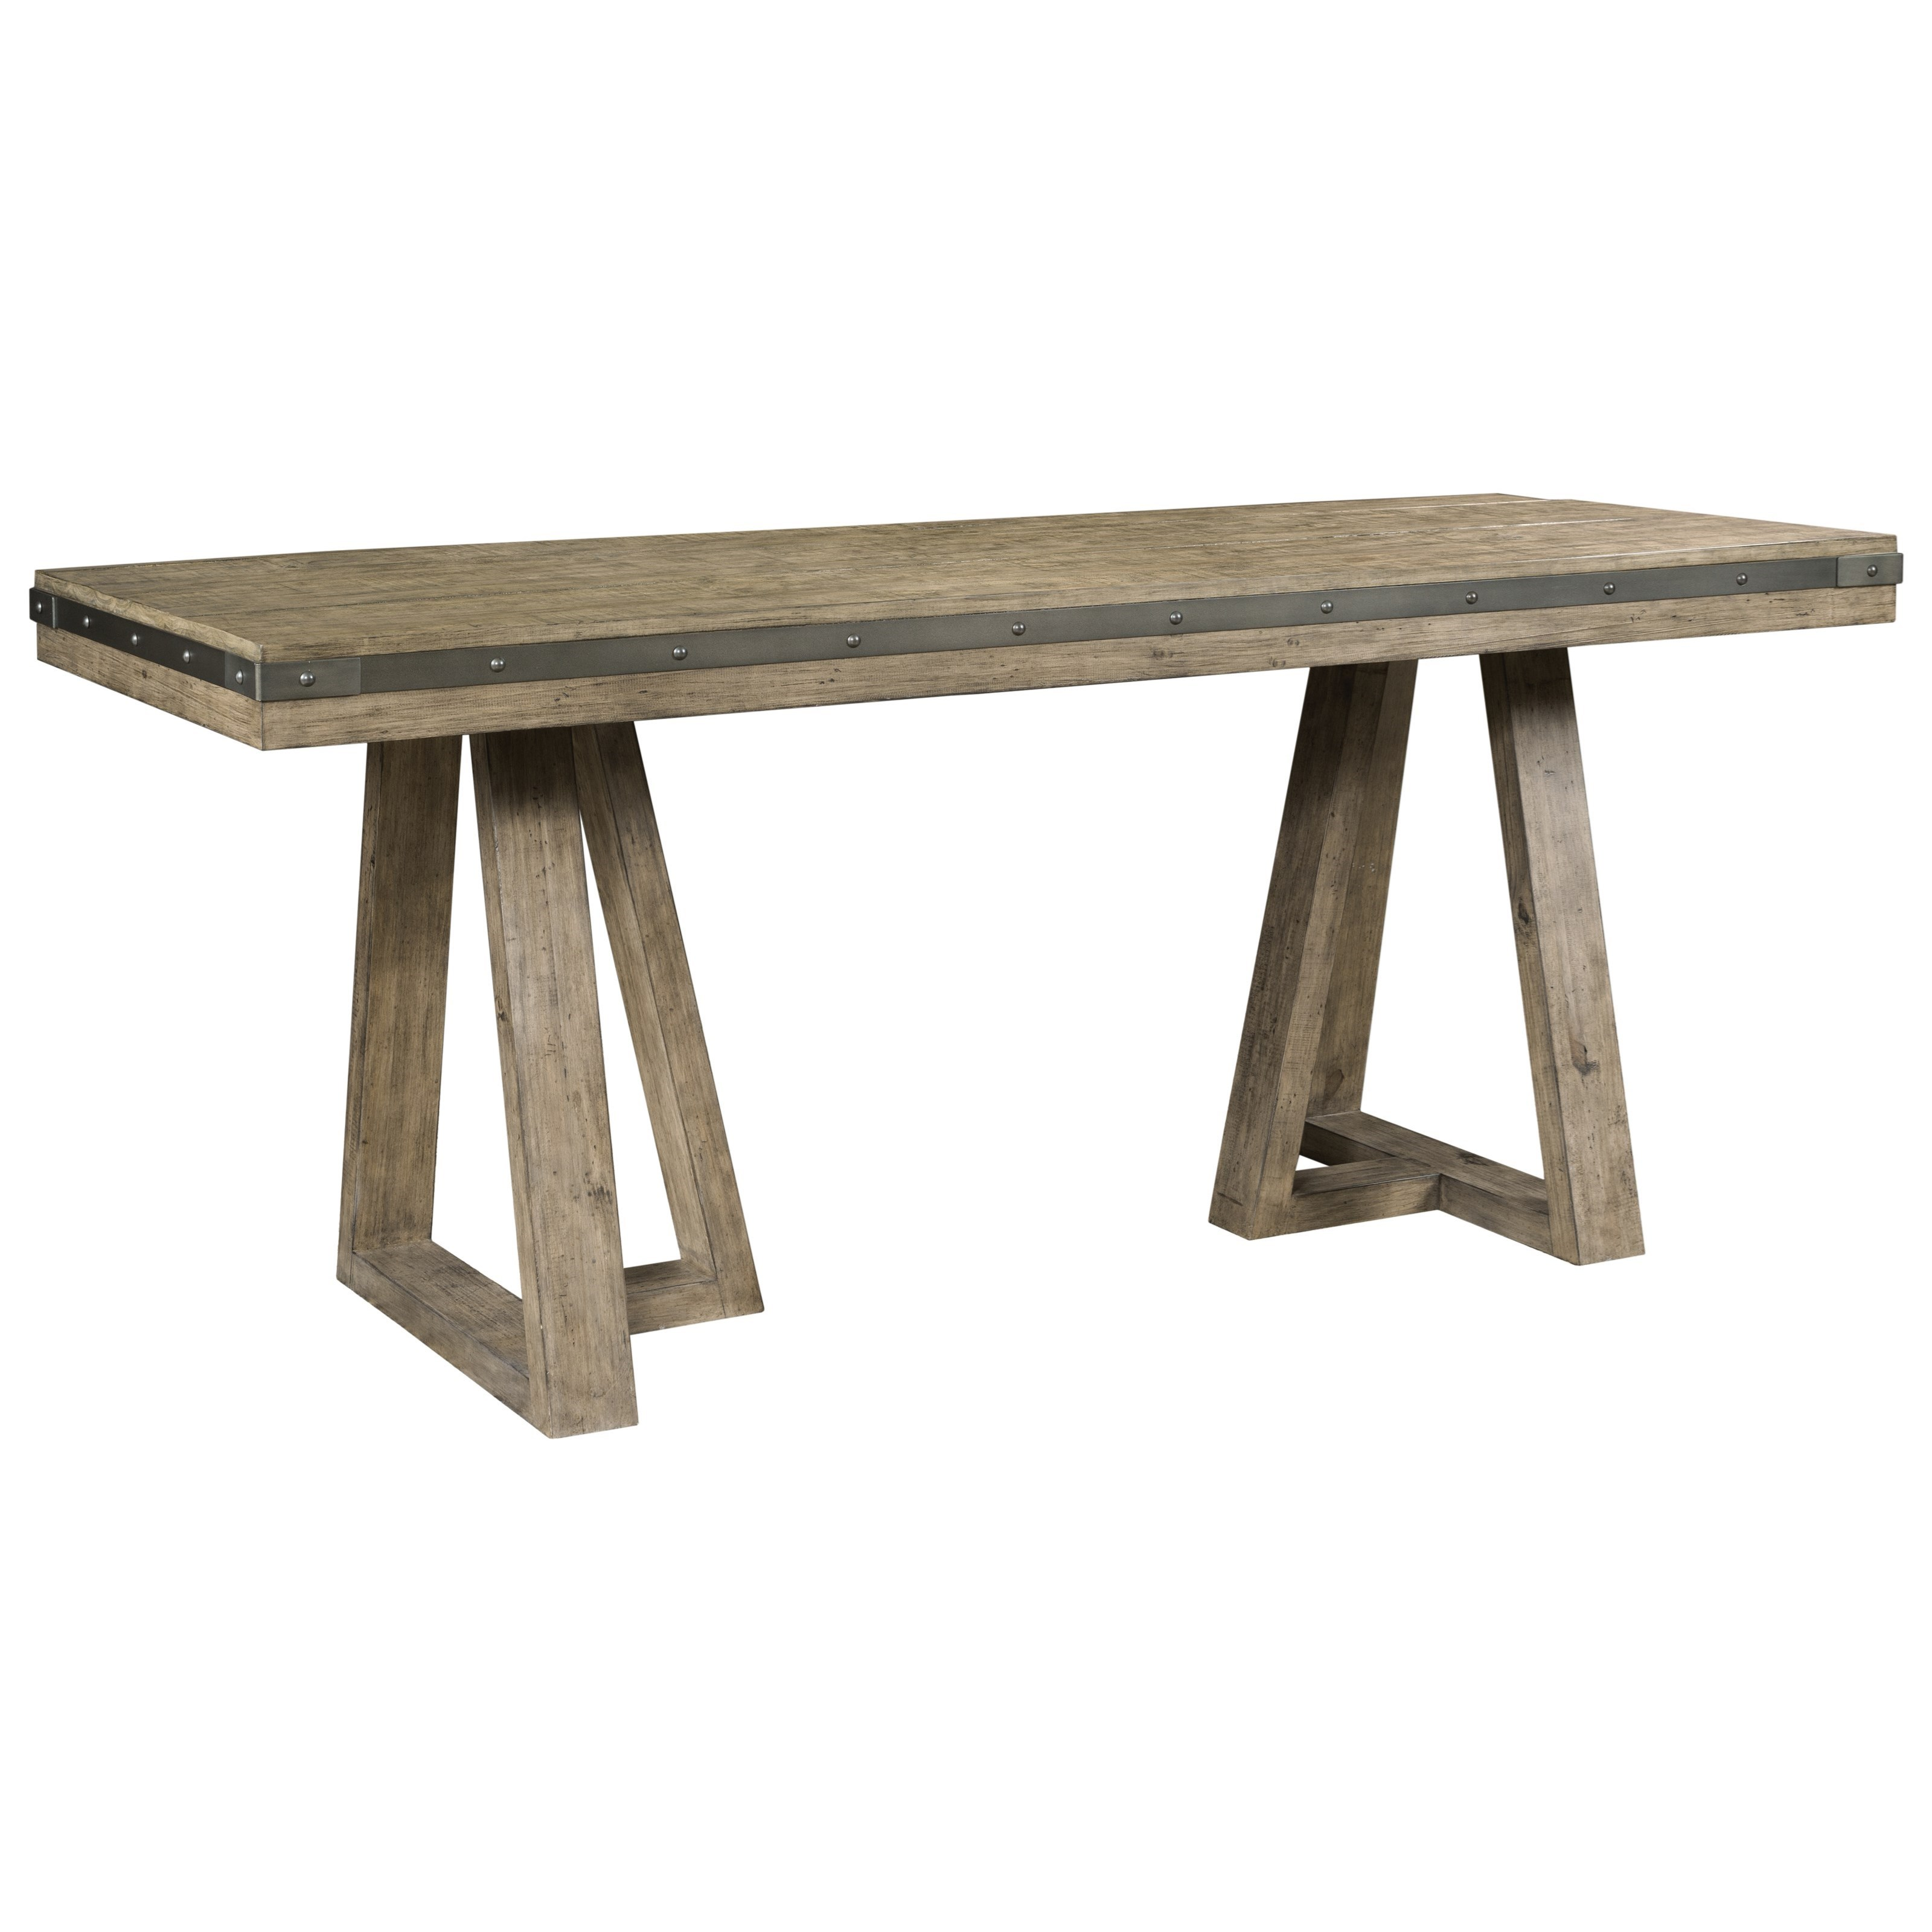 Plank Road Kimler Counter Height Dining Table by Kincaid Furniture at Johnny Janosik